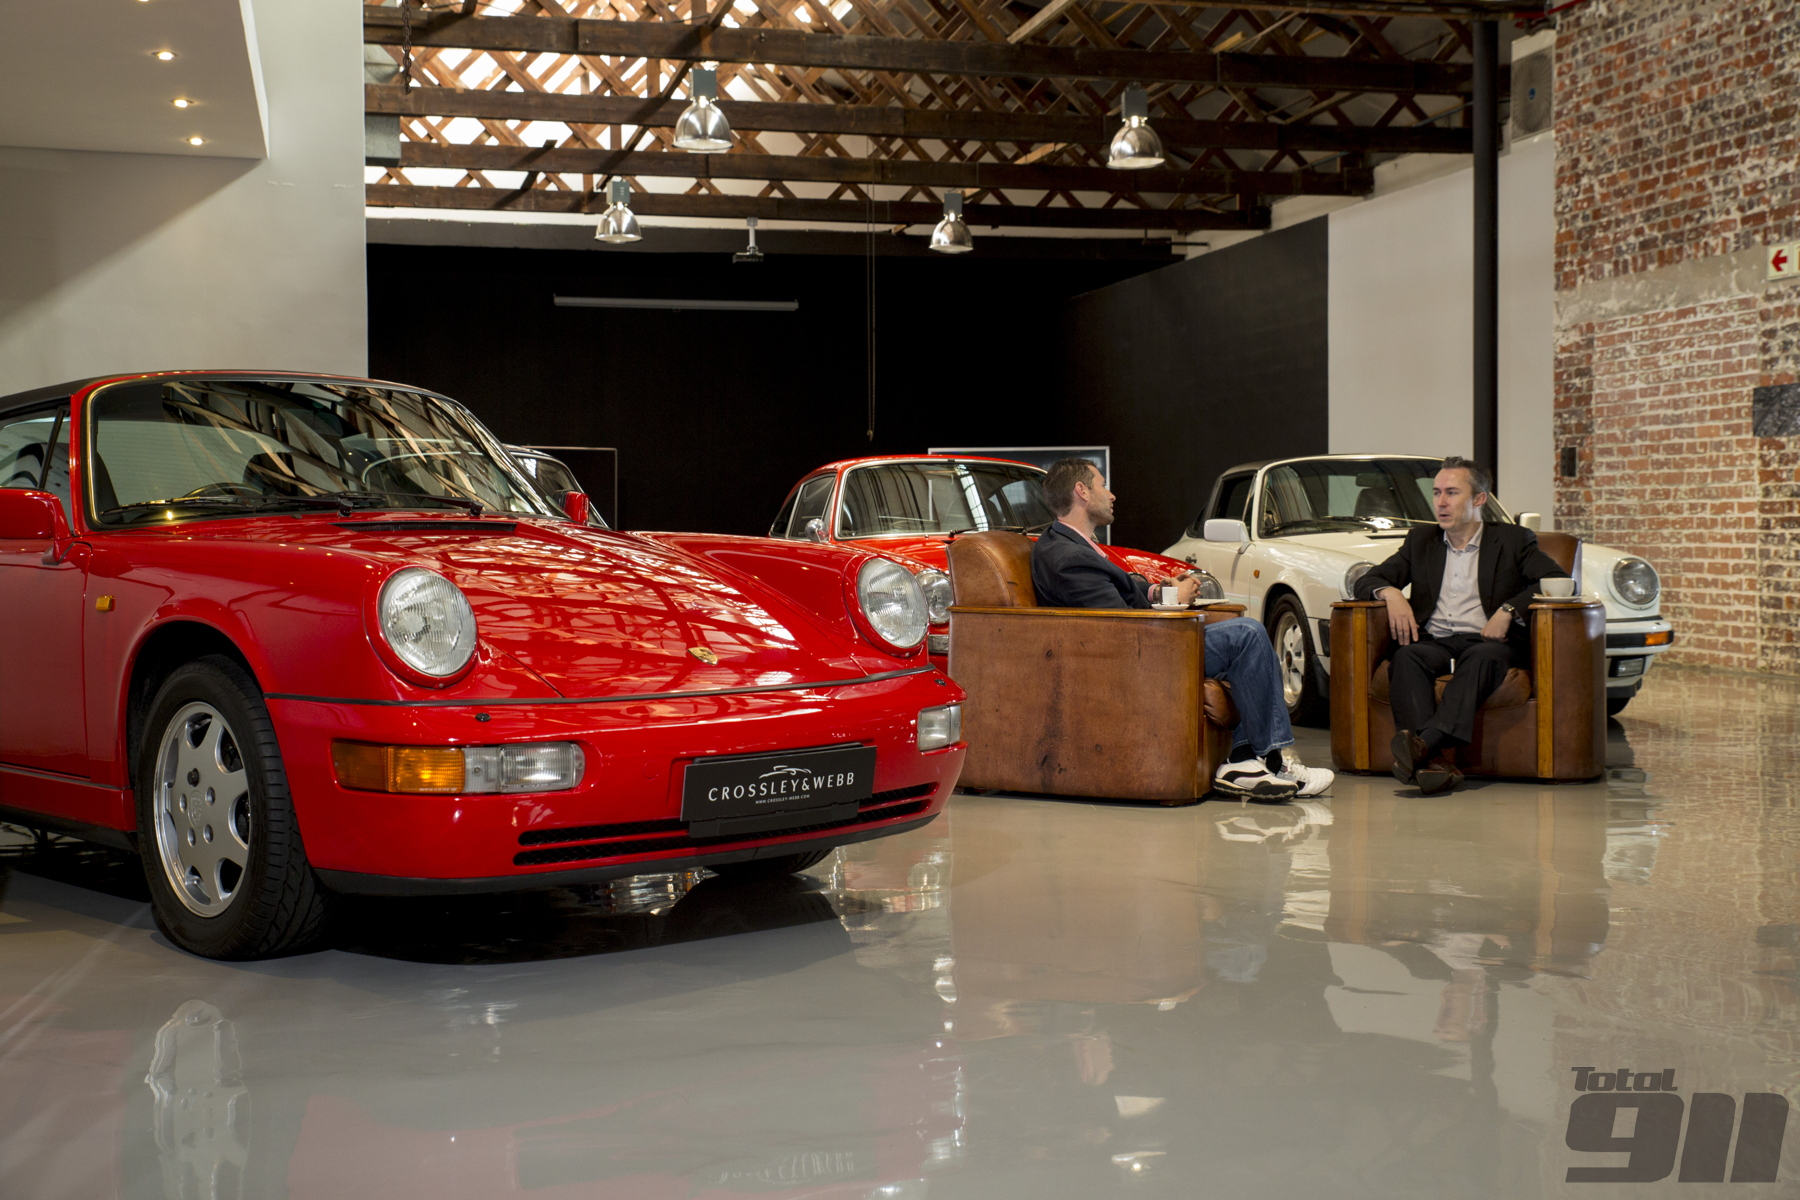 We discuss the classic Porsche market with Crossley & Webb, South Africa's premier Porsche specialist.